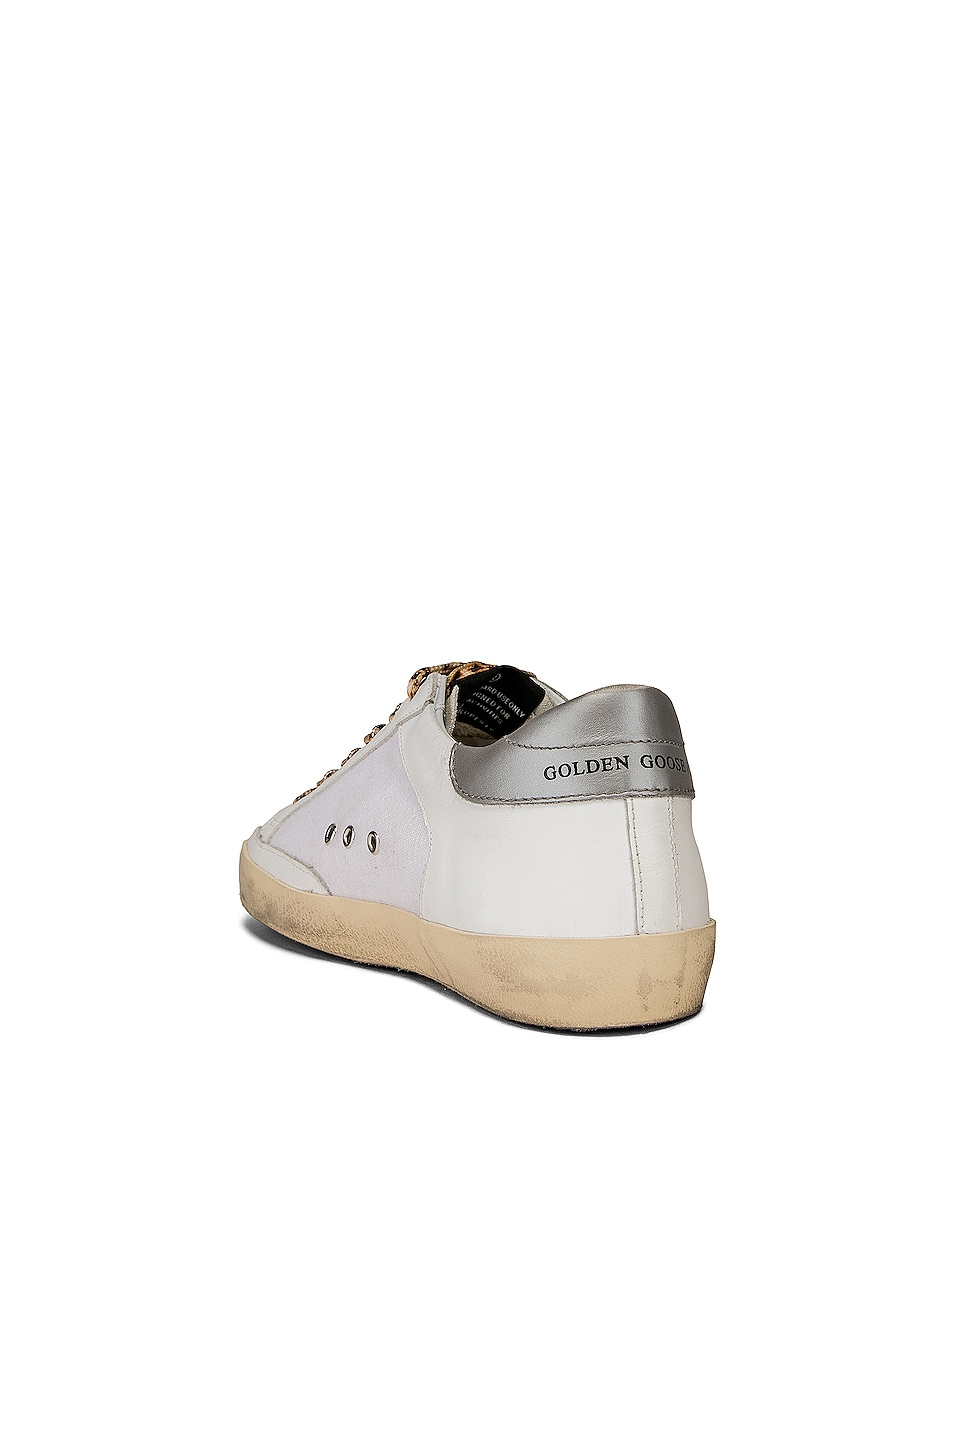 Image 3 of Golden Goose Leopard Lace Superstar Sneakers in White Canvas & Fluorescent